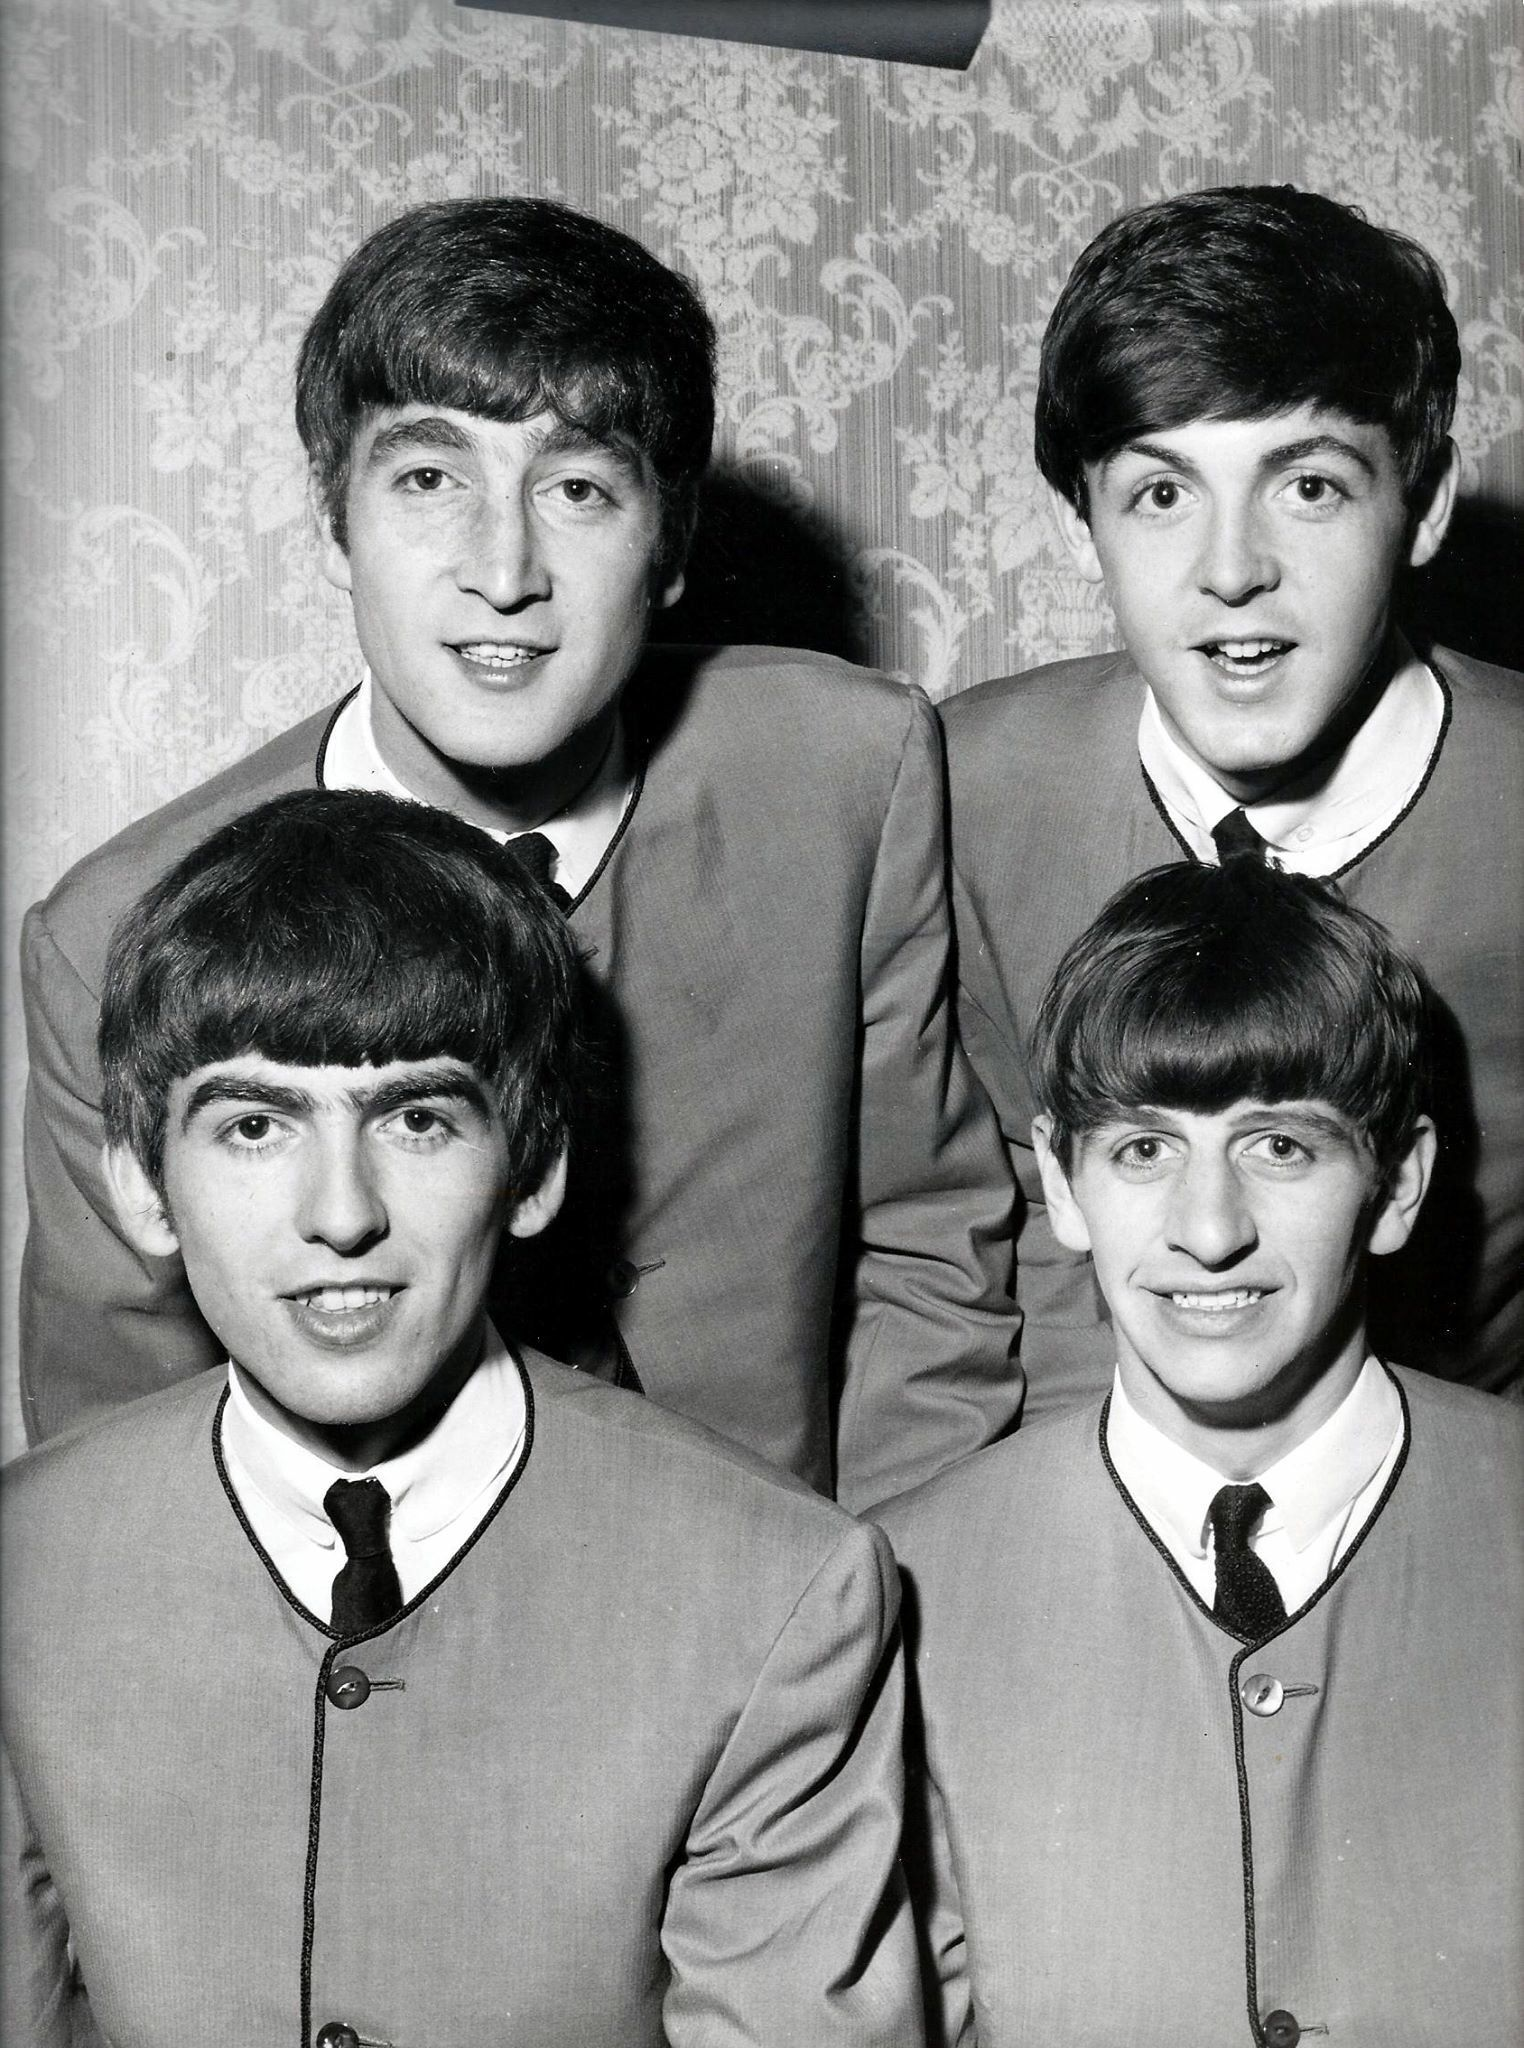 The Beatles 1963 (With images) | The beatles, Beatles rare ...